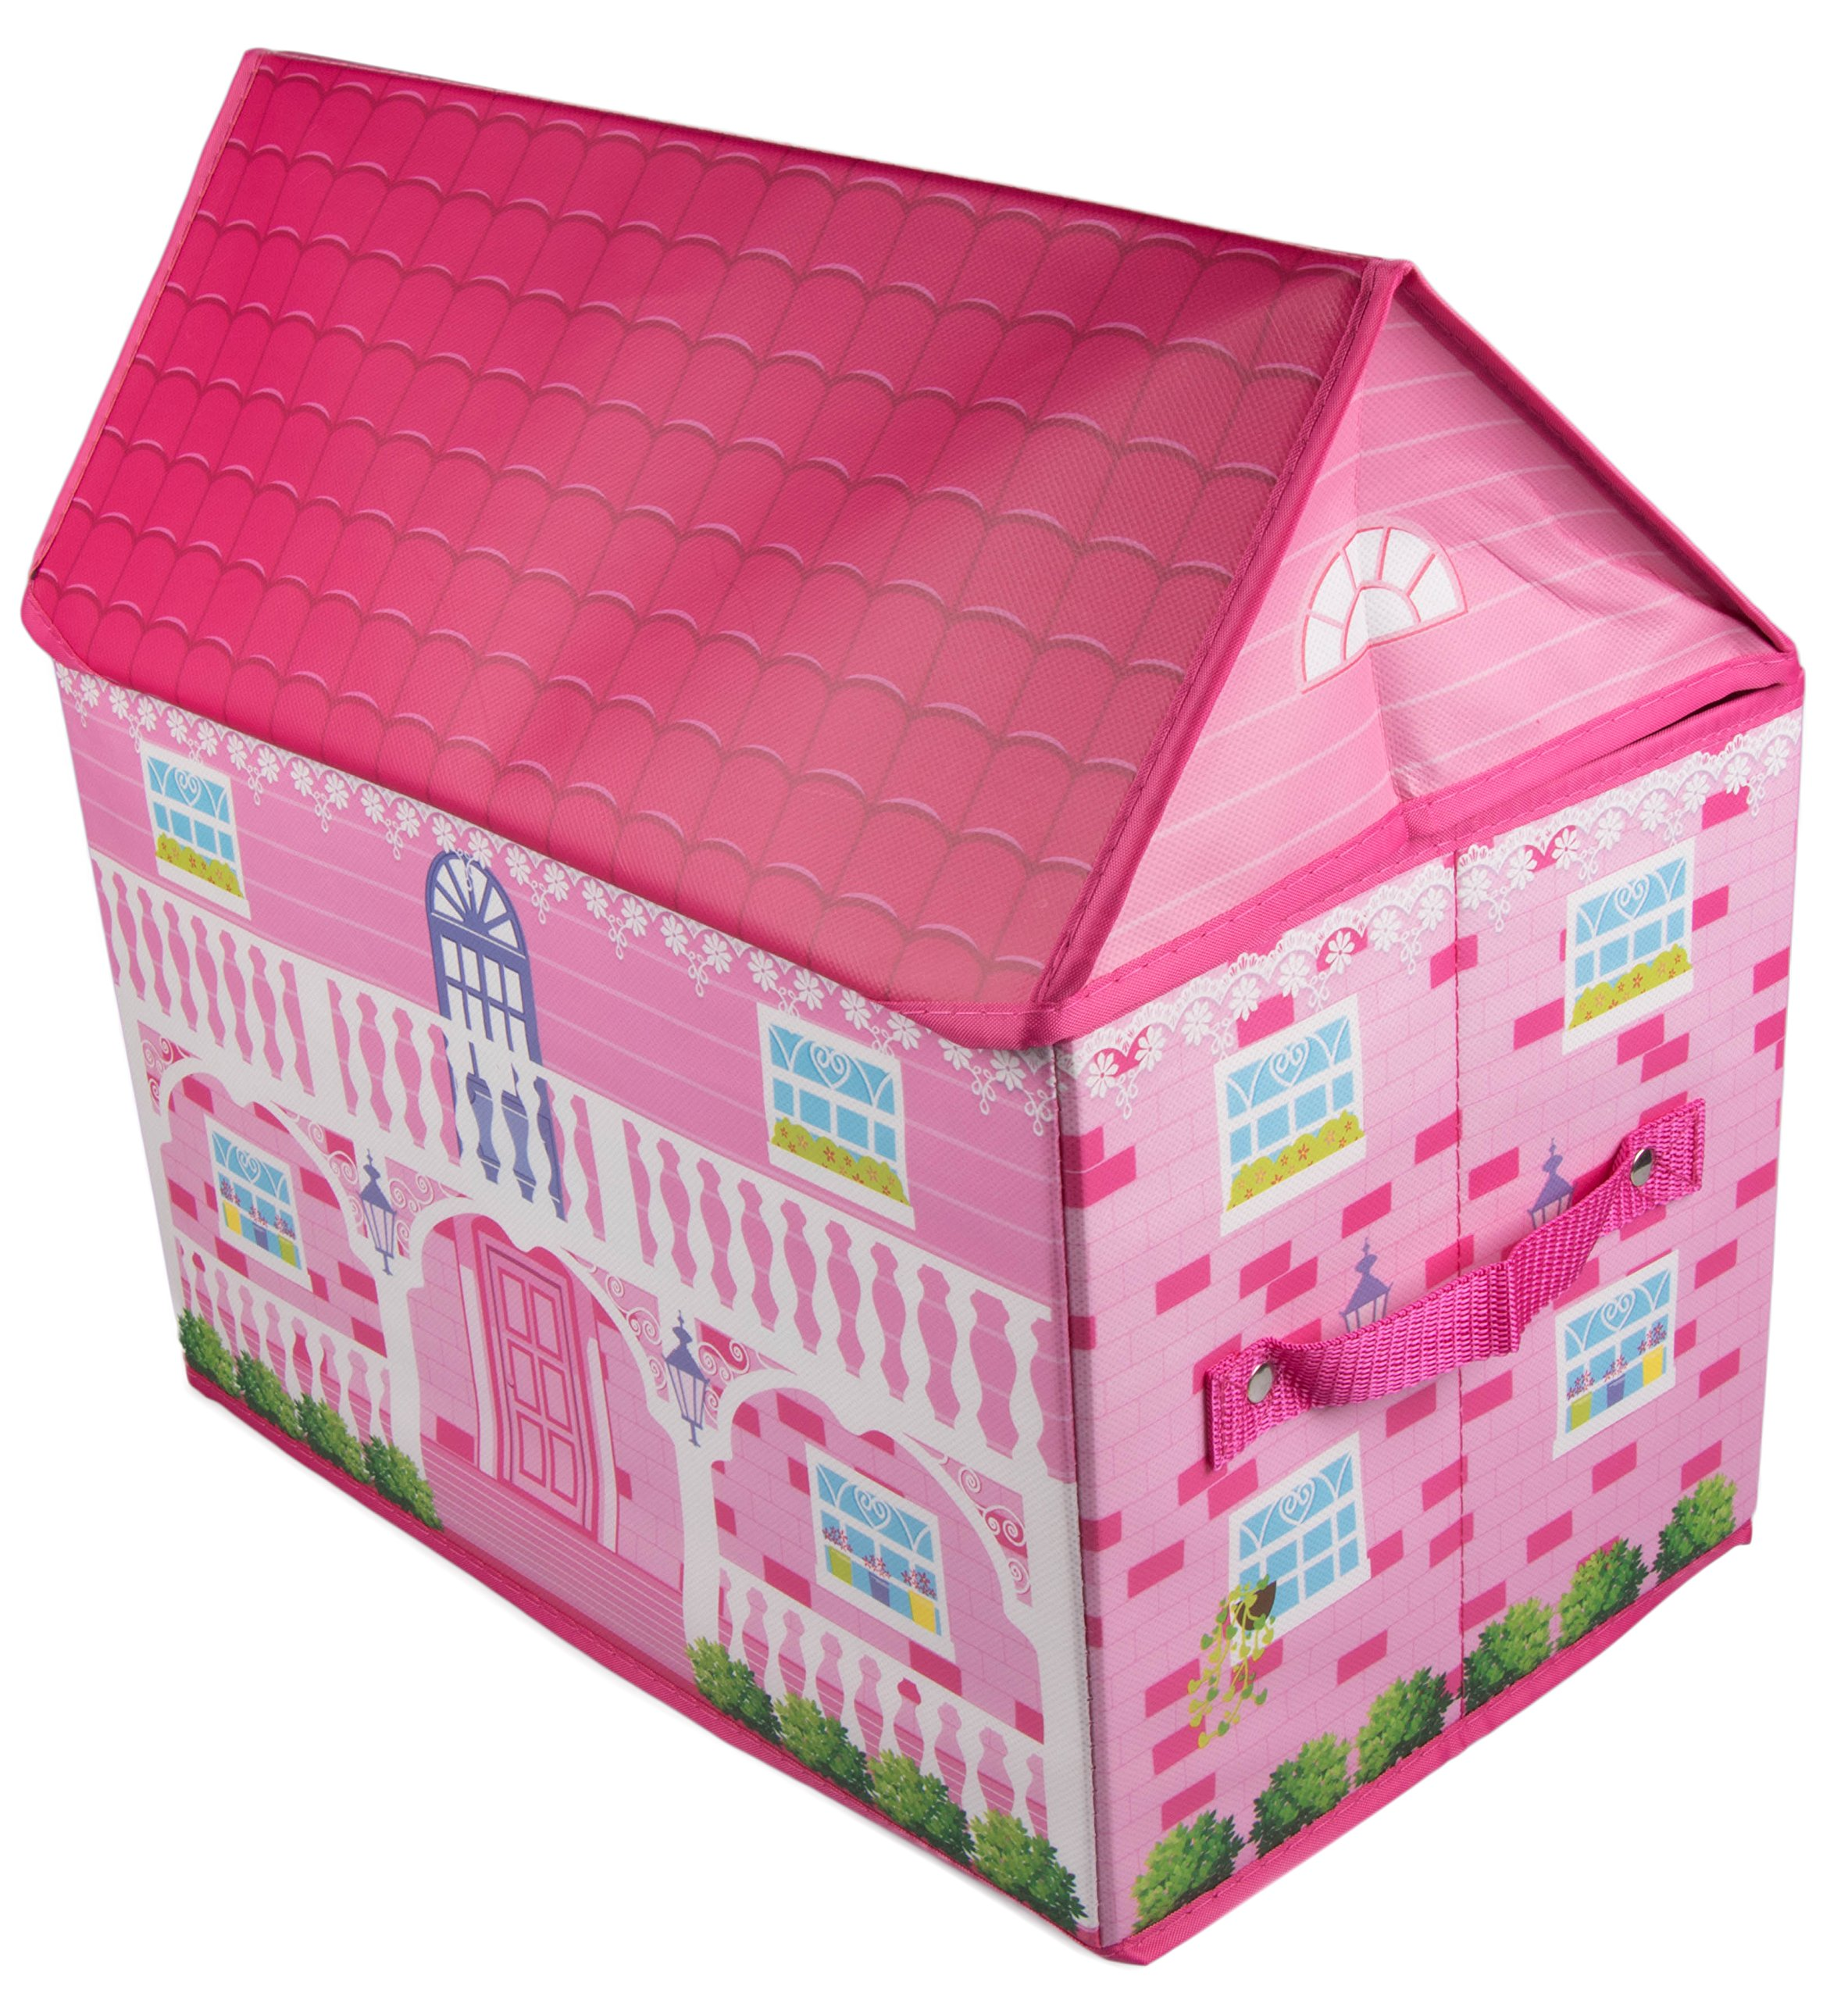 Clever Creations Pink Cottage-Style House Collapsible Toy Storage Organizer Sturdy Toy Box Folding Storage for Child's Bedroom | Perfect Size Toy Chest for Organizing Books, Toys, Clothes, Shoes